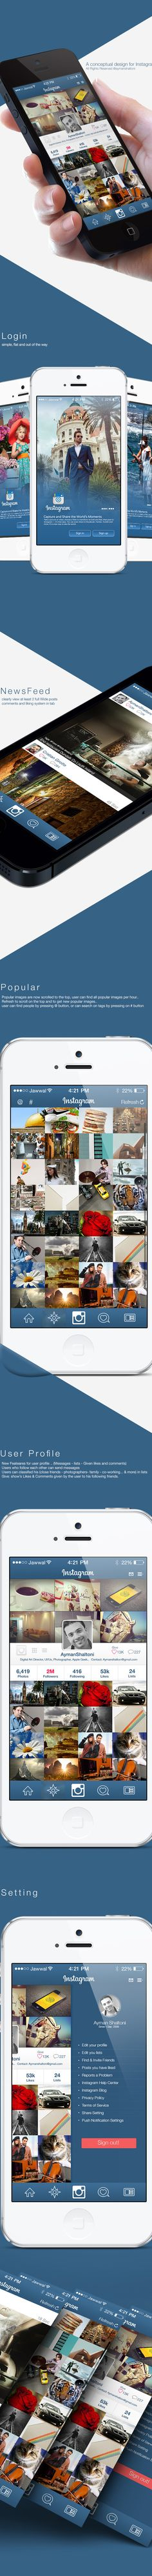 Instagram Redesign Concept by Ayman Shaltoni, via Behance